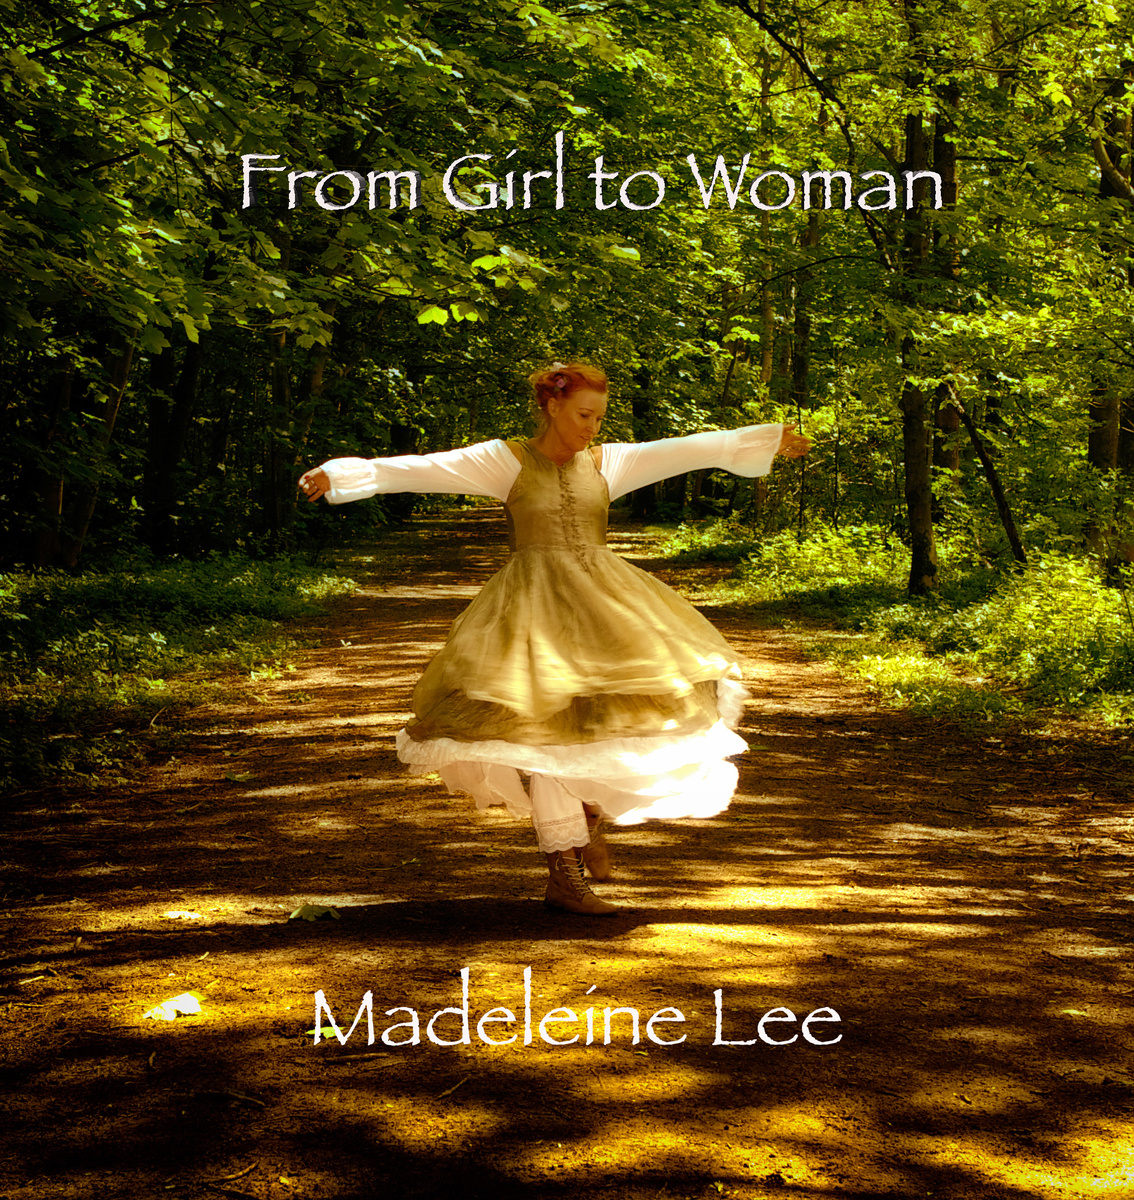 Madeleine Lee - 'From Girl to Woman' - buy it now